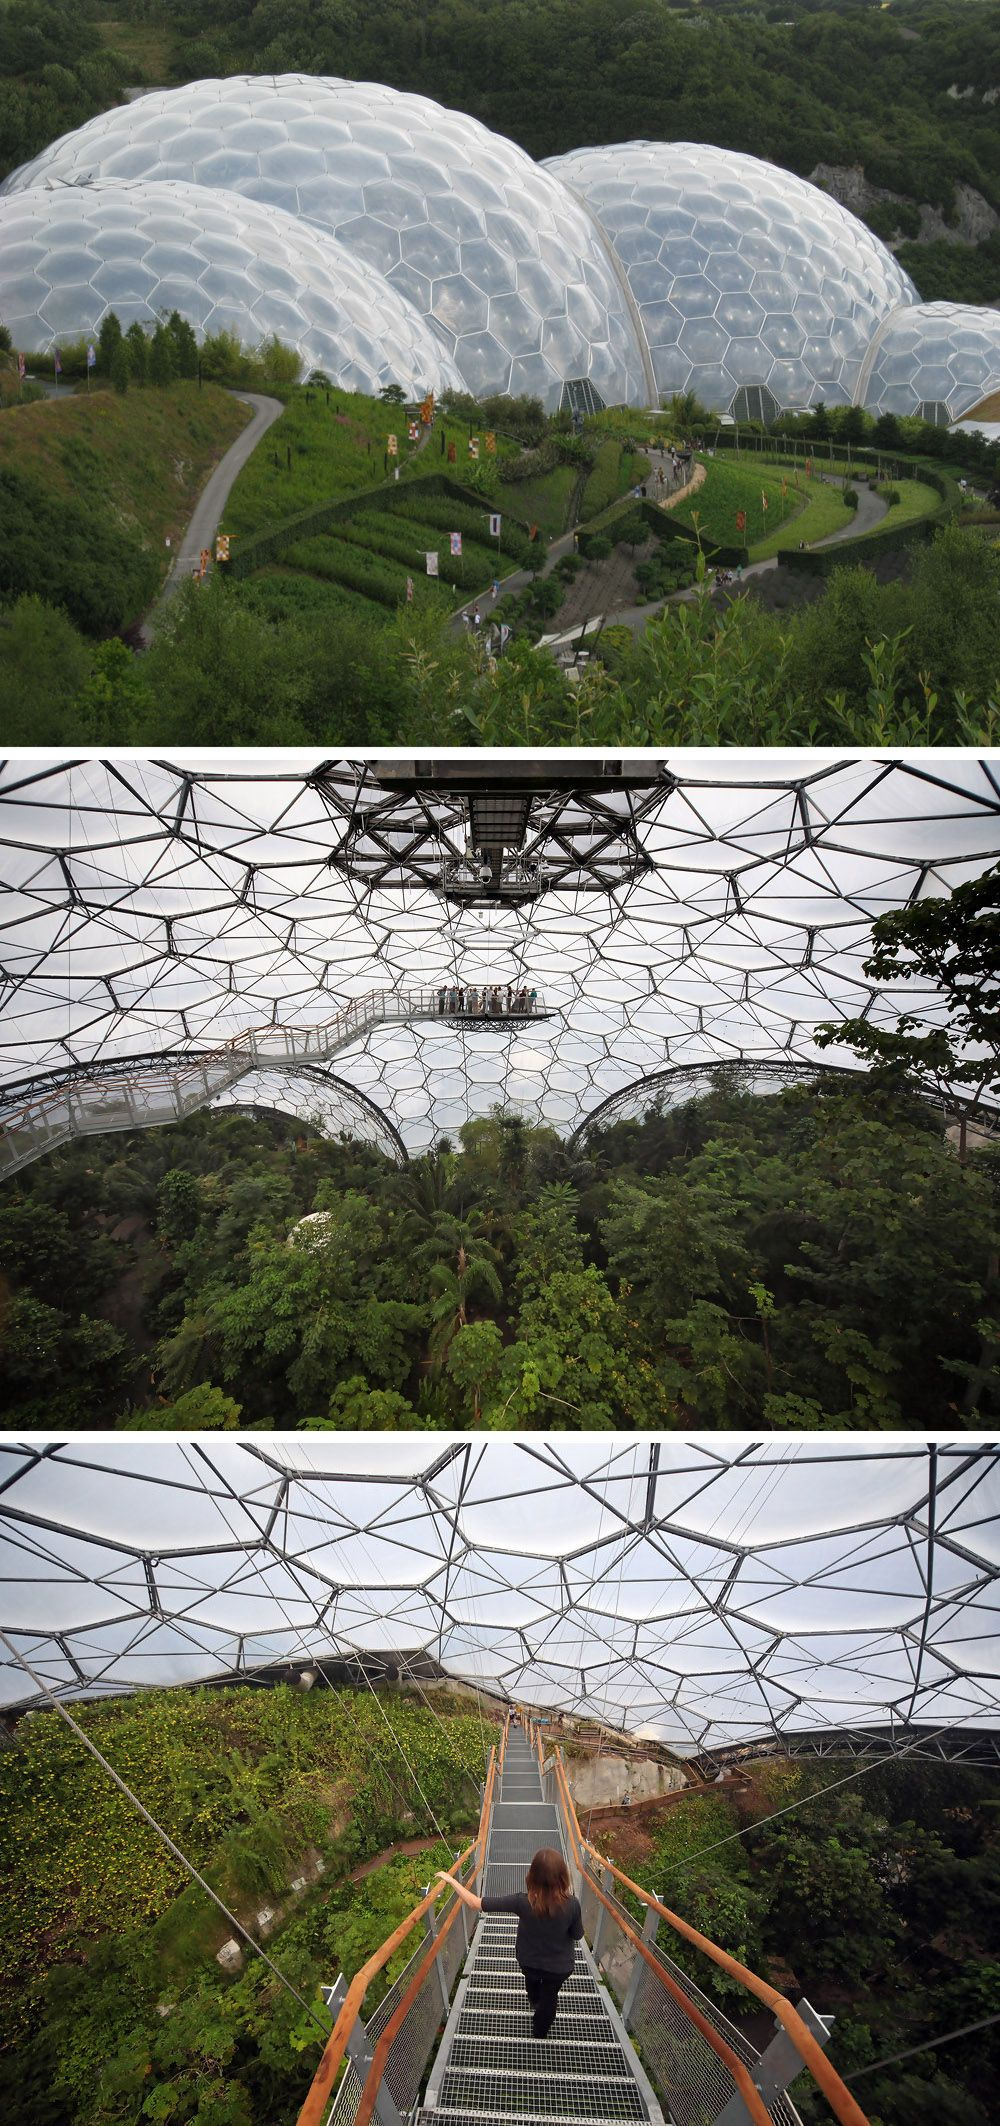 The Eden Project Is A Collection Of Giant Biodomes In Cornwall Uk Each Domed Garden Houses A